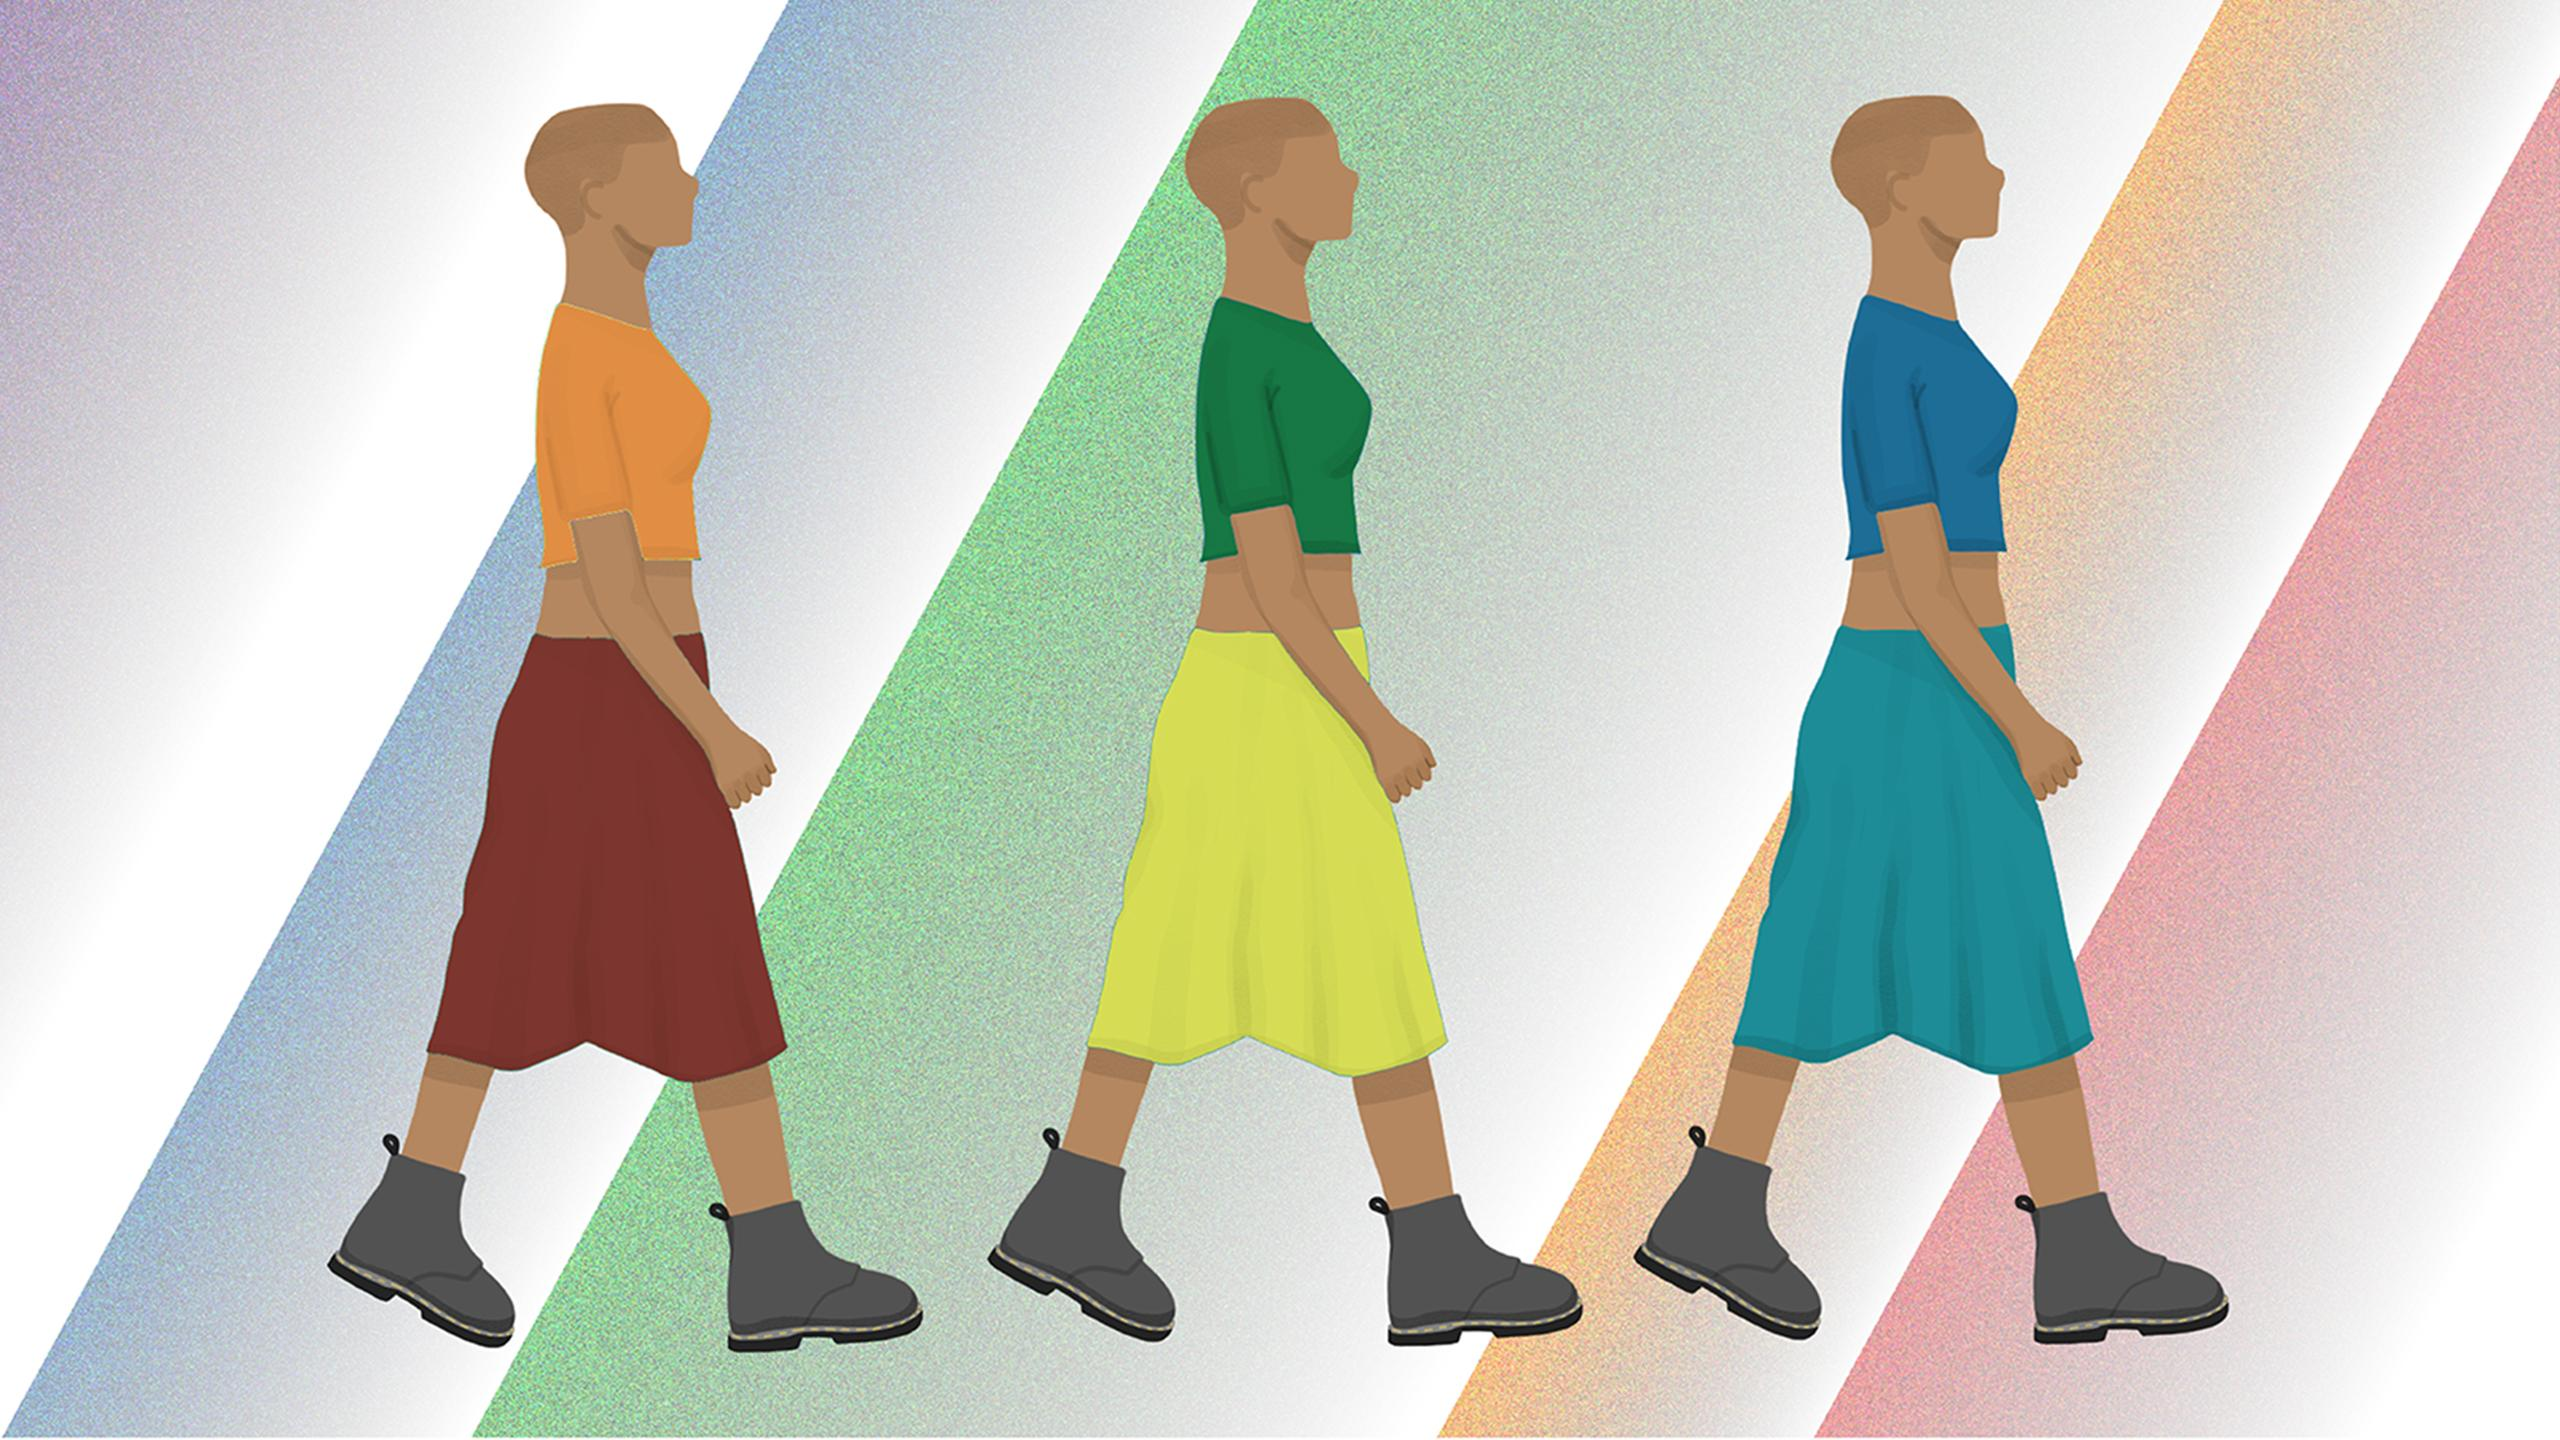 Femme person walking wearing 3 variations of the same outfit with the colours of the rainbow.